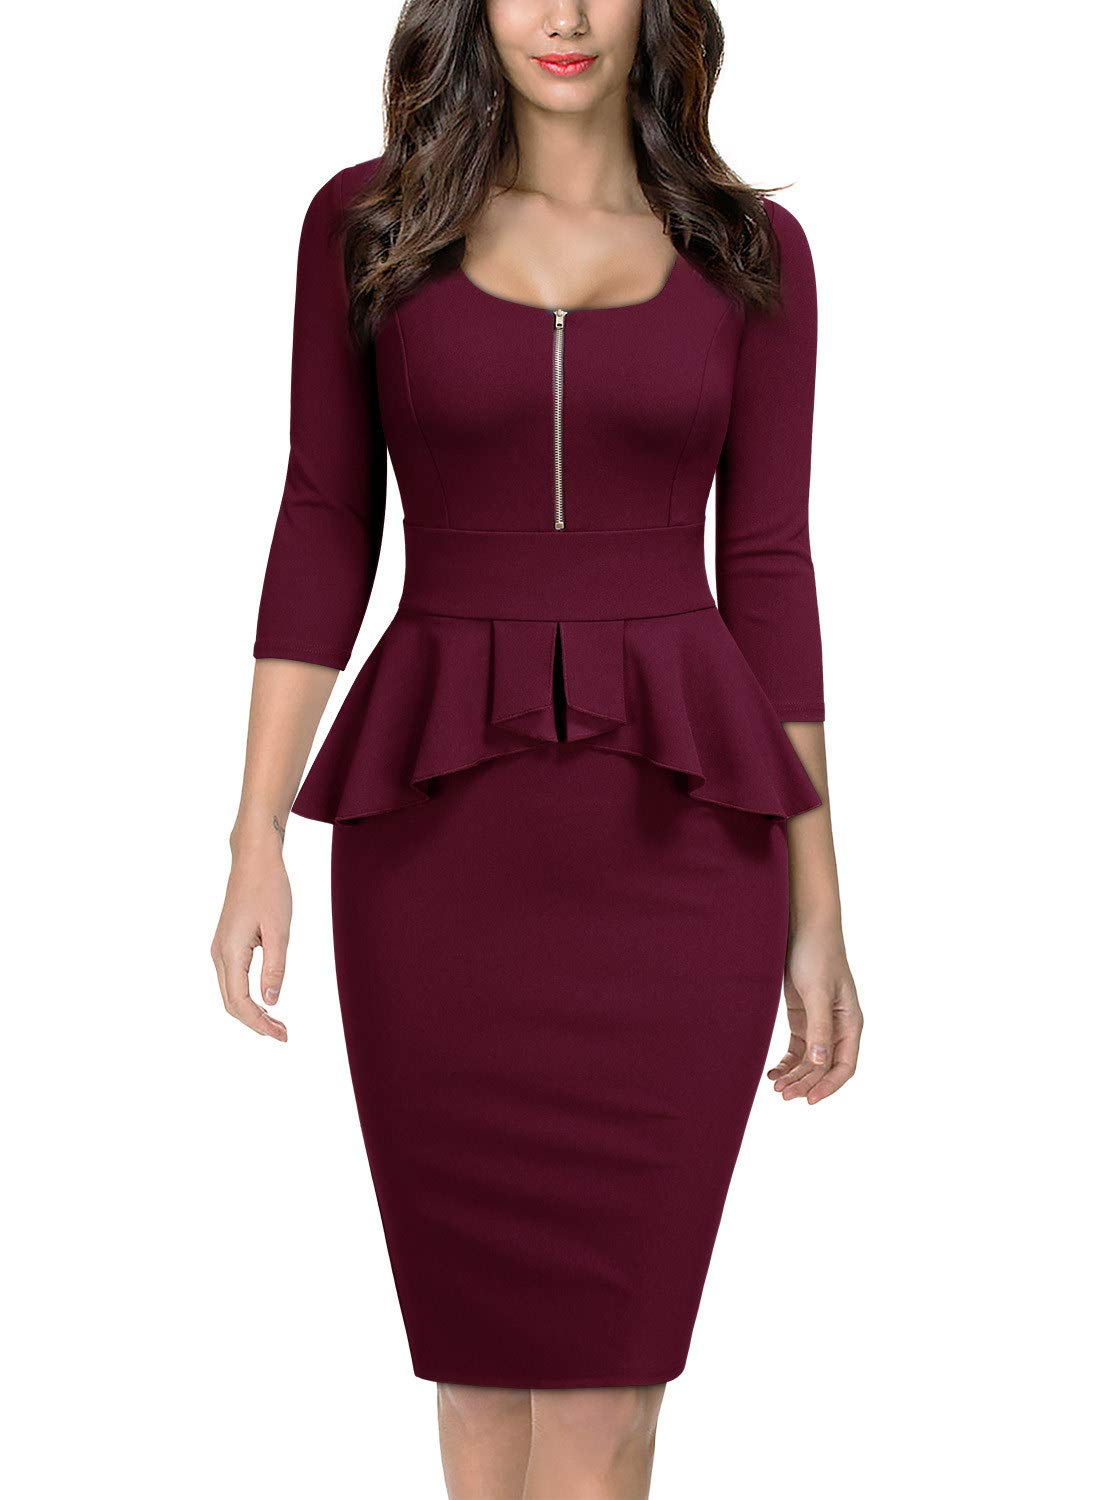 Miusol Women's Retro Square Neck Ruffle Style Slim Business Pencil Dress